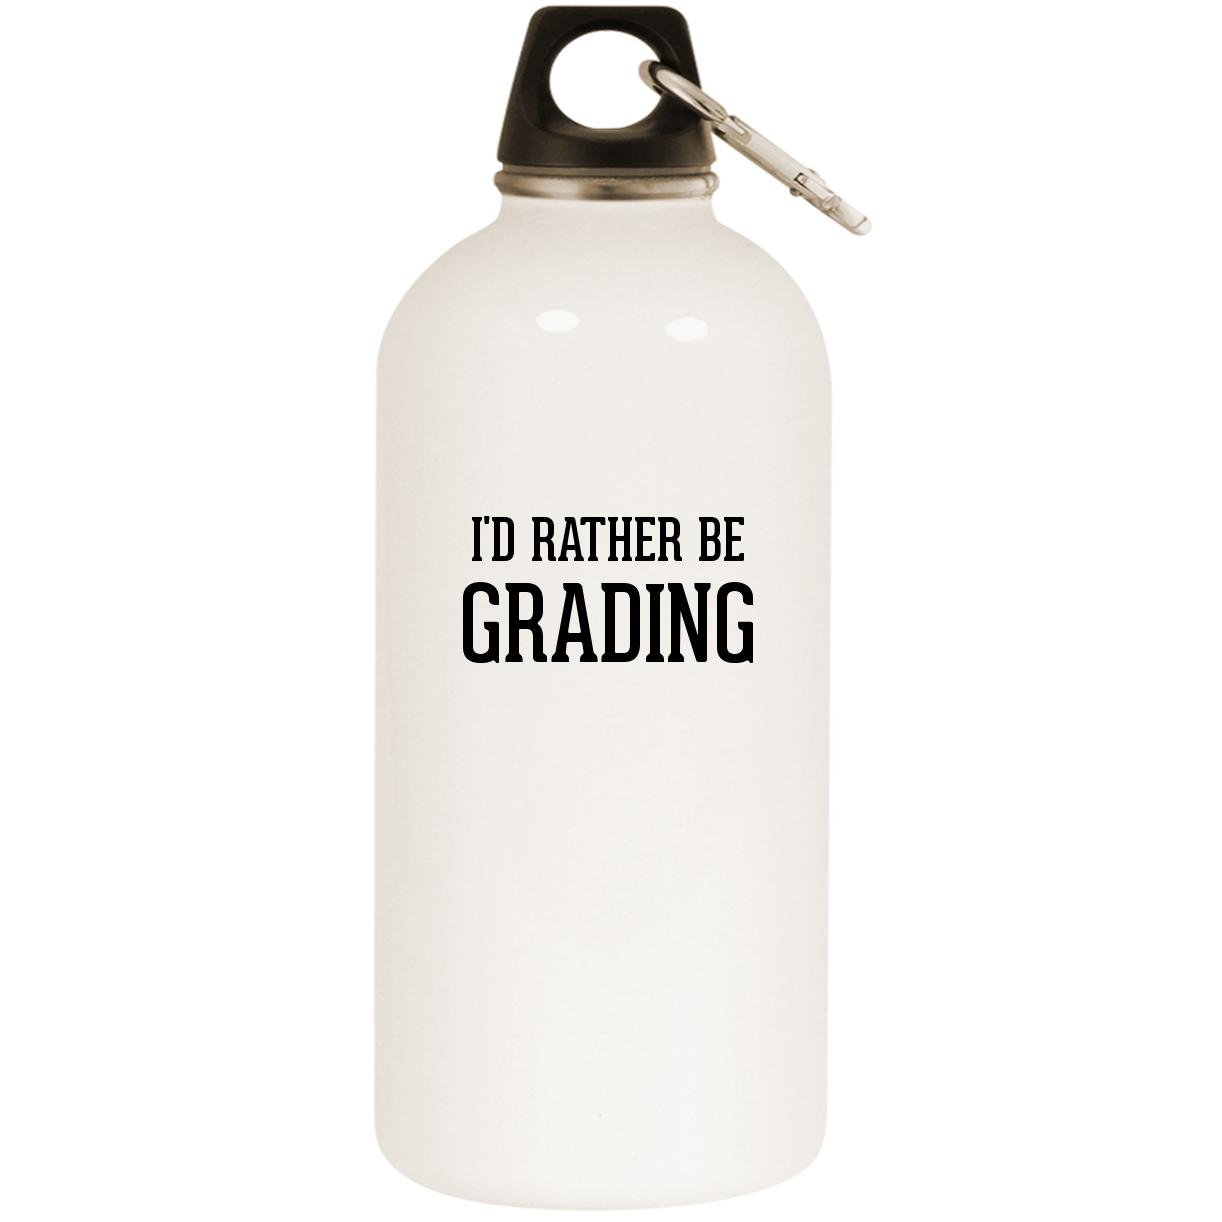 I'd Rather Be GRADING - White 20oz Stainless Steel Water Bottle with Carabiner